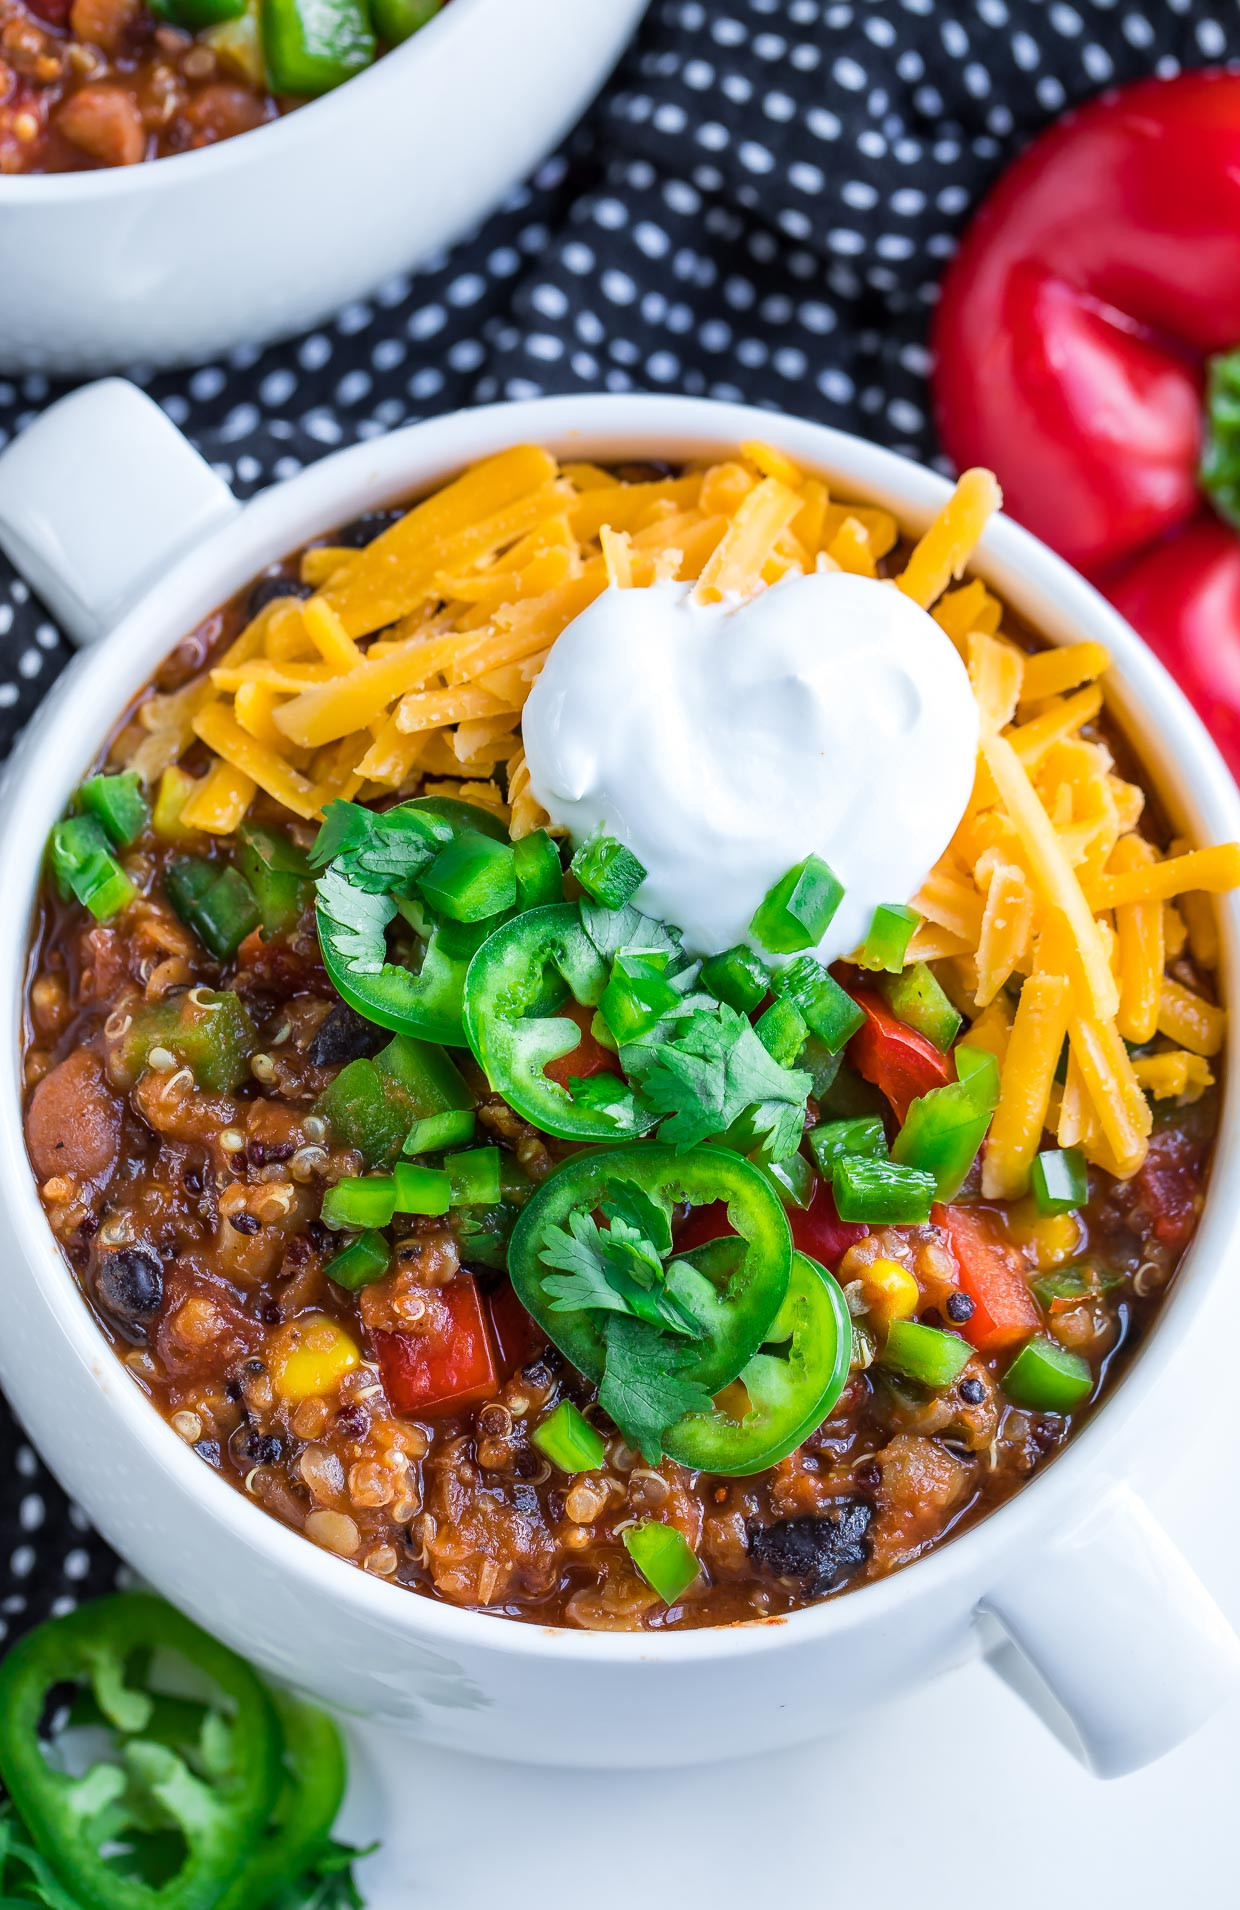 Healthy Vegetarian Instant Pot Recipes top 20 Instant Pot Ve Arian Quinoa Chili Peas and Crayons